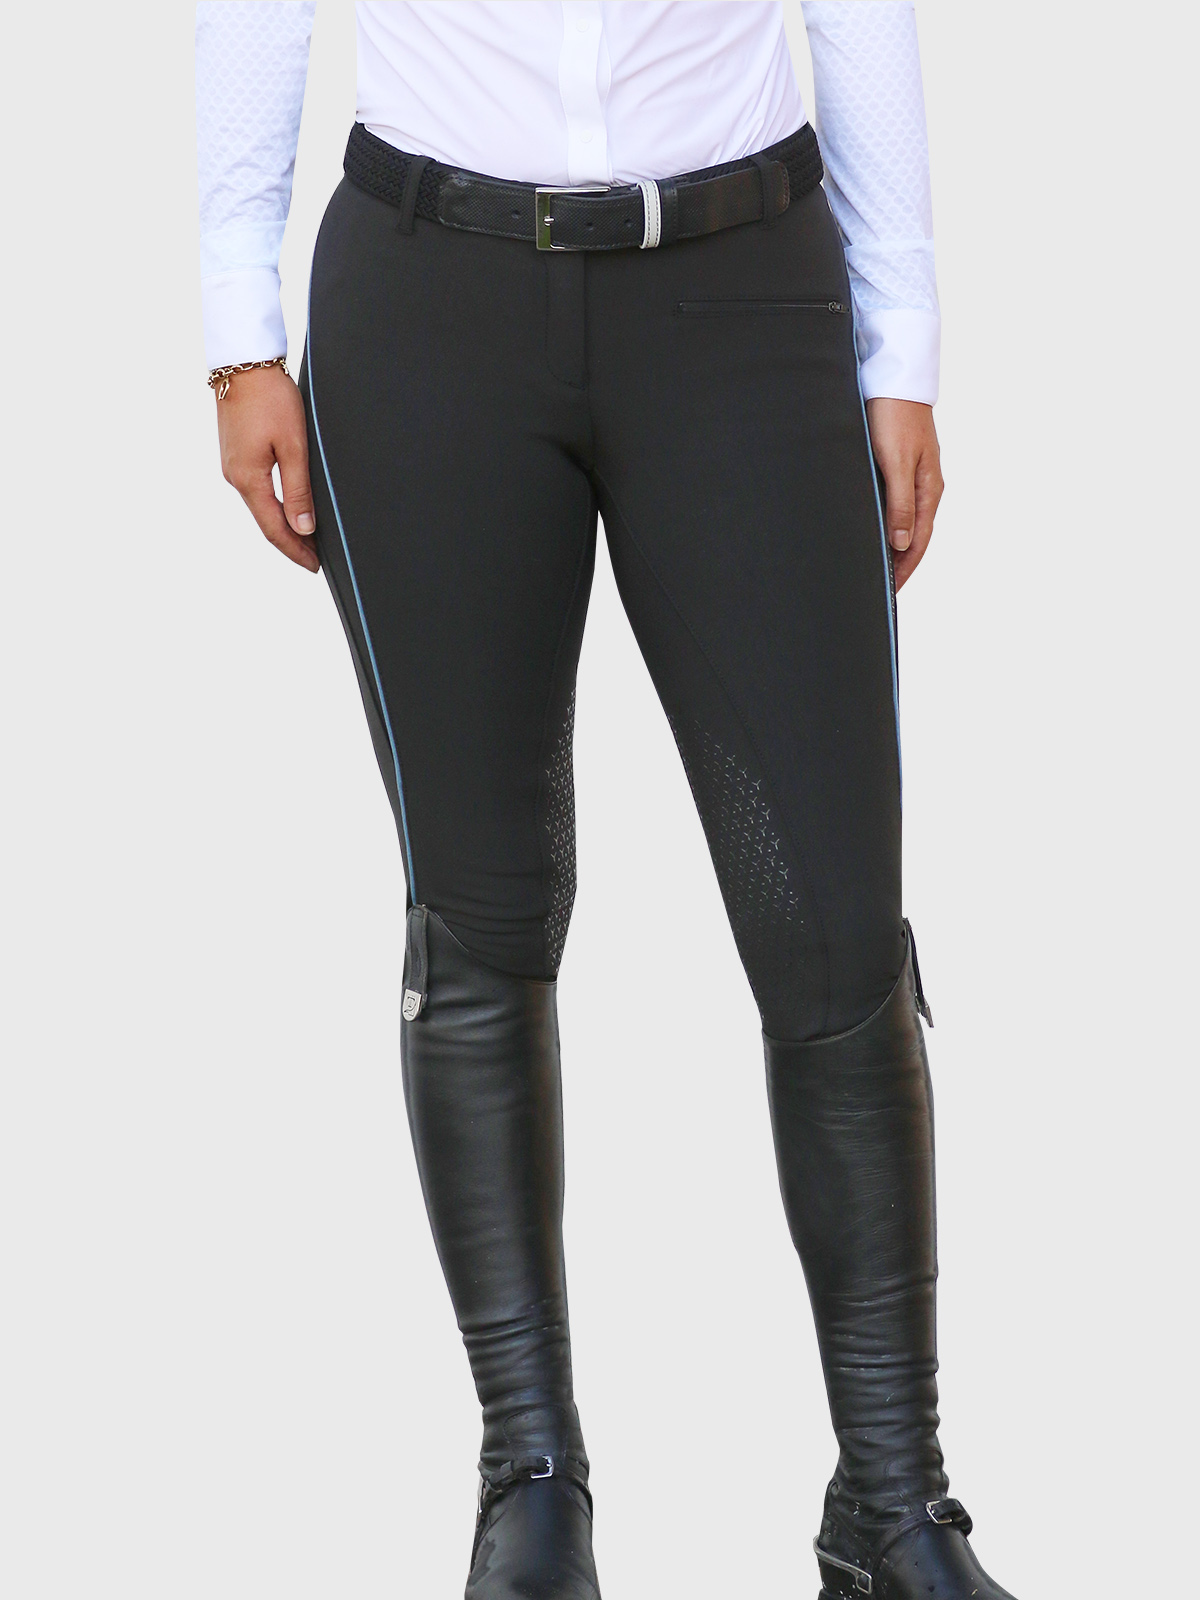 CAMILA KNEE GRIP BREECHES 2